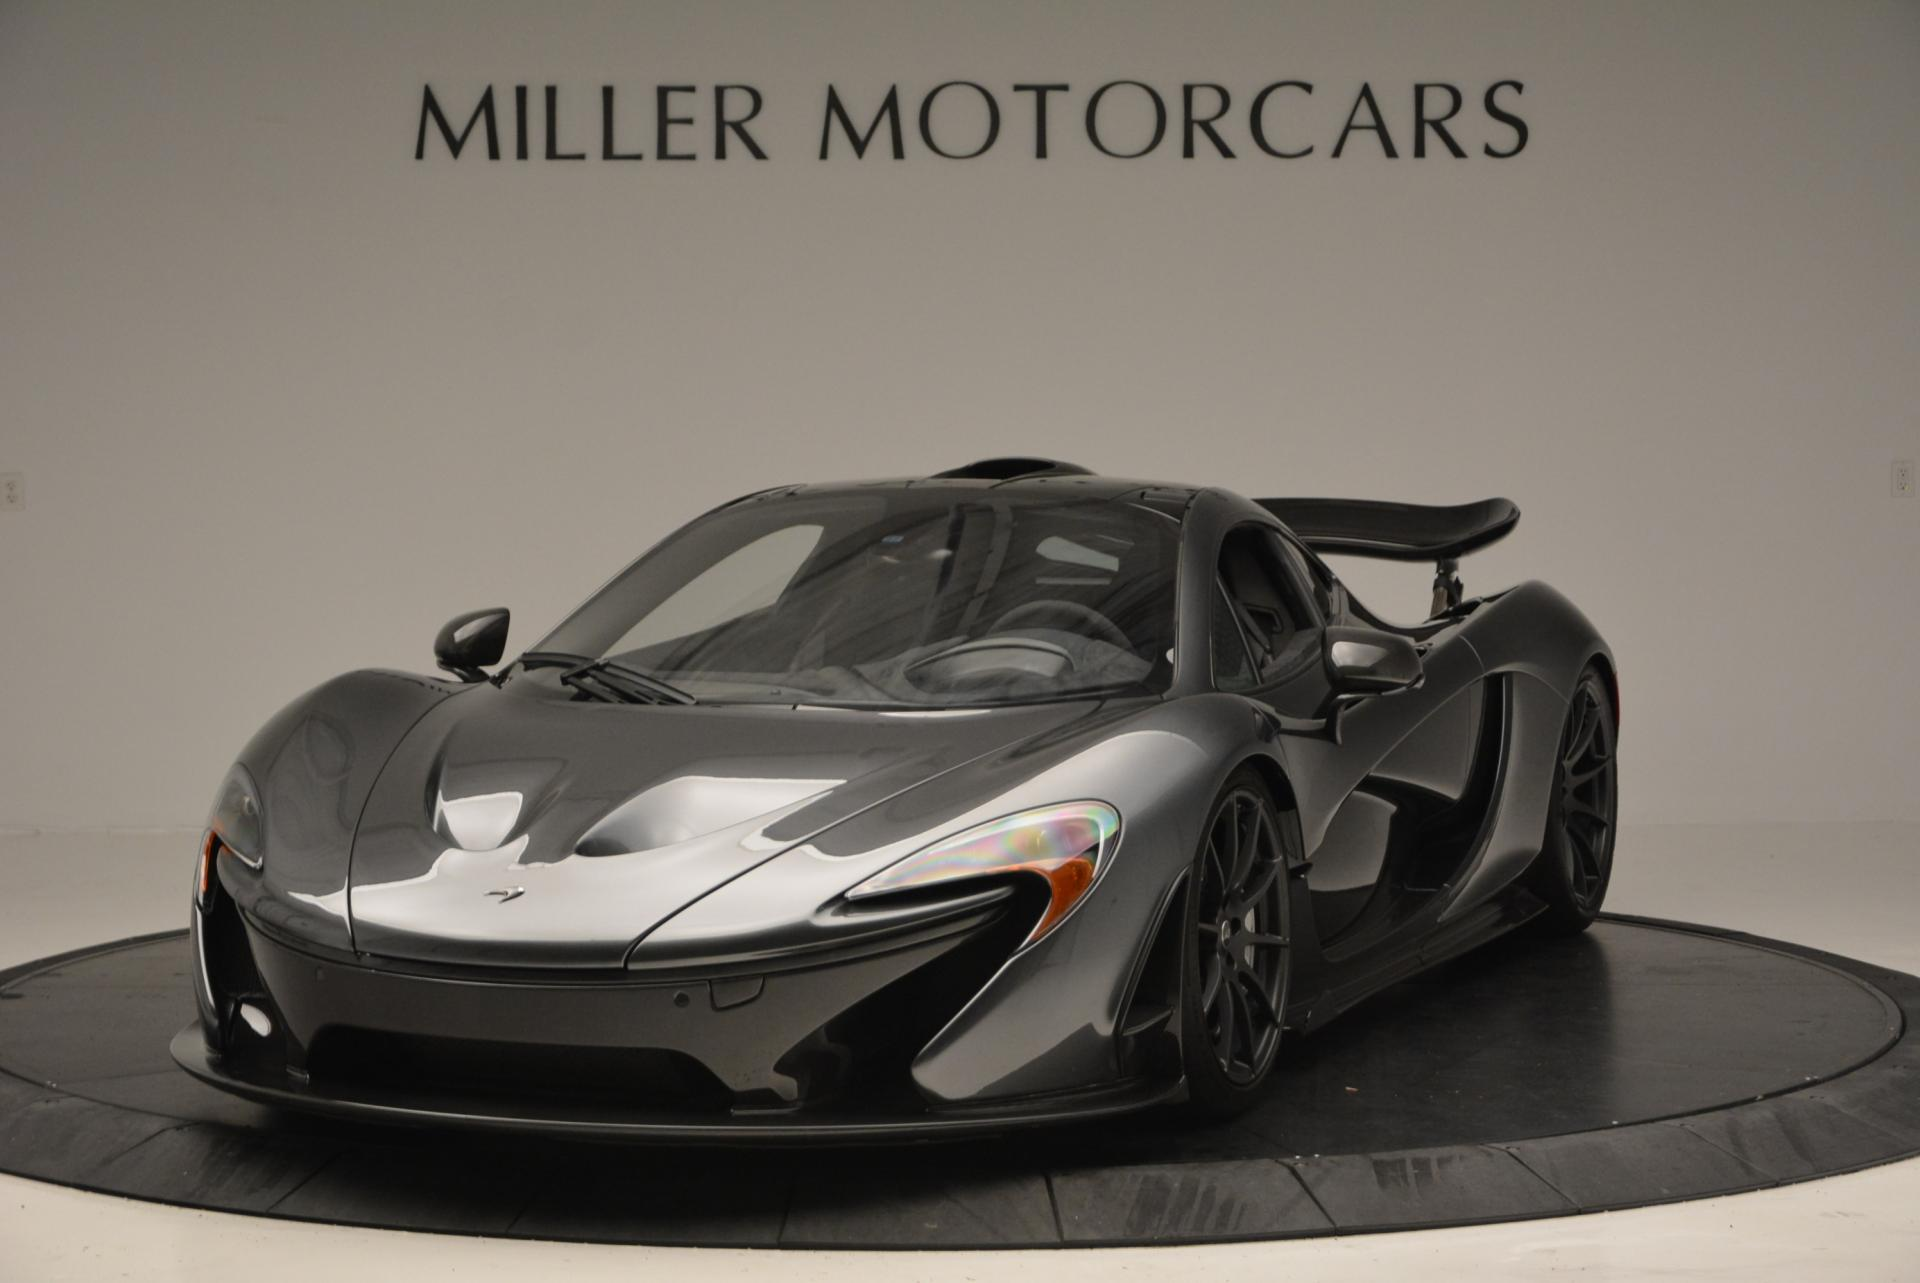 Used 2014 McLaren P1 Coupe For Sale In Greenwich, CT. Alfa Romeo of Greenwich, 3100 513_main